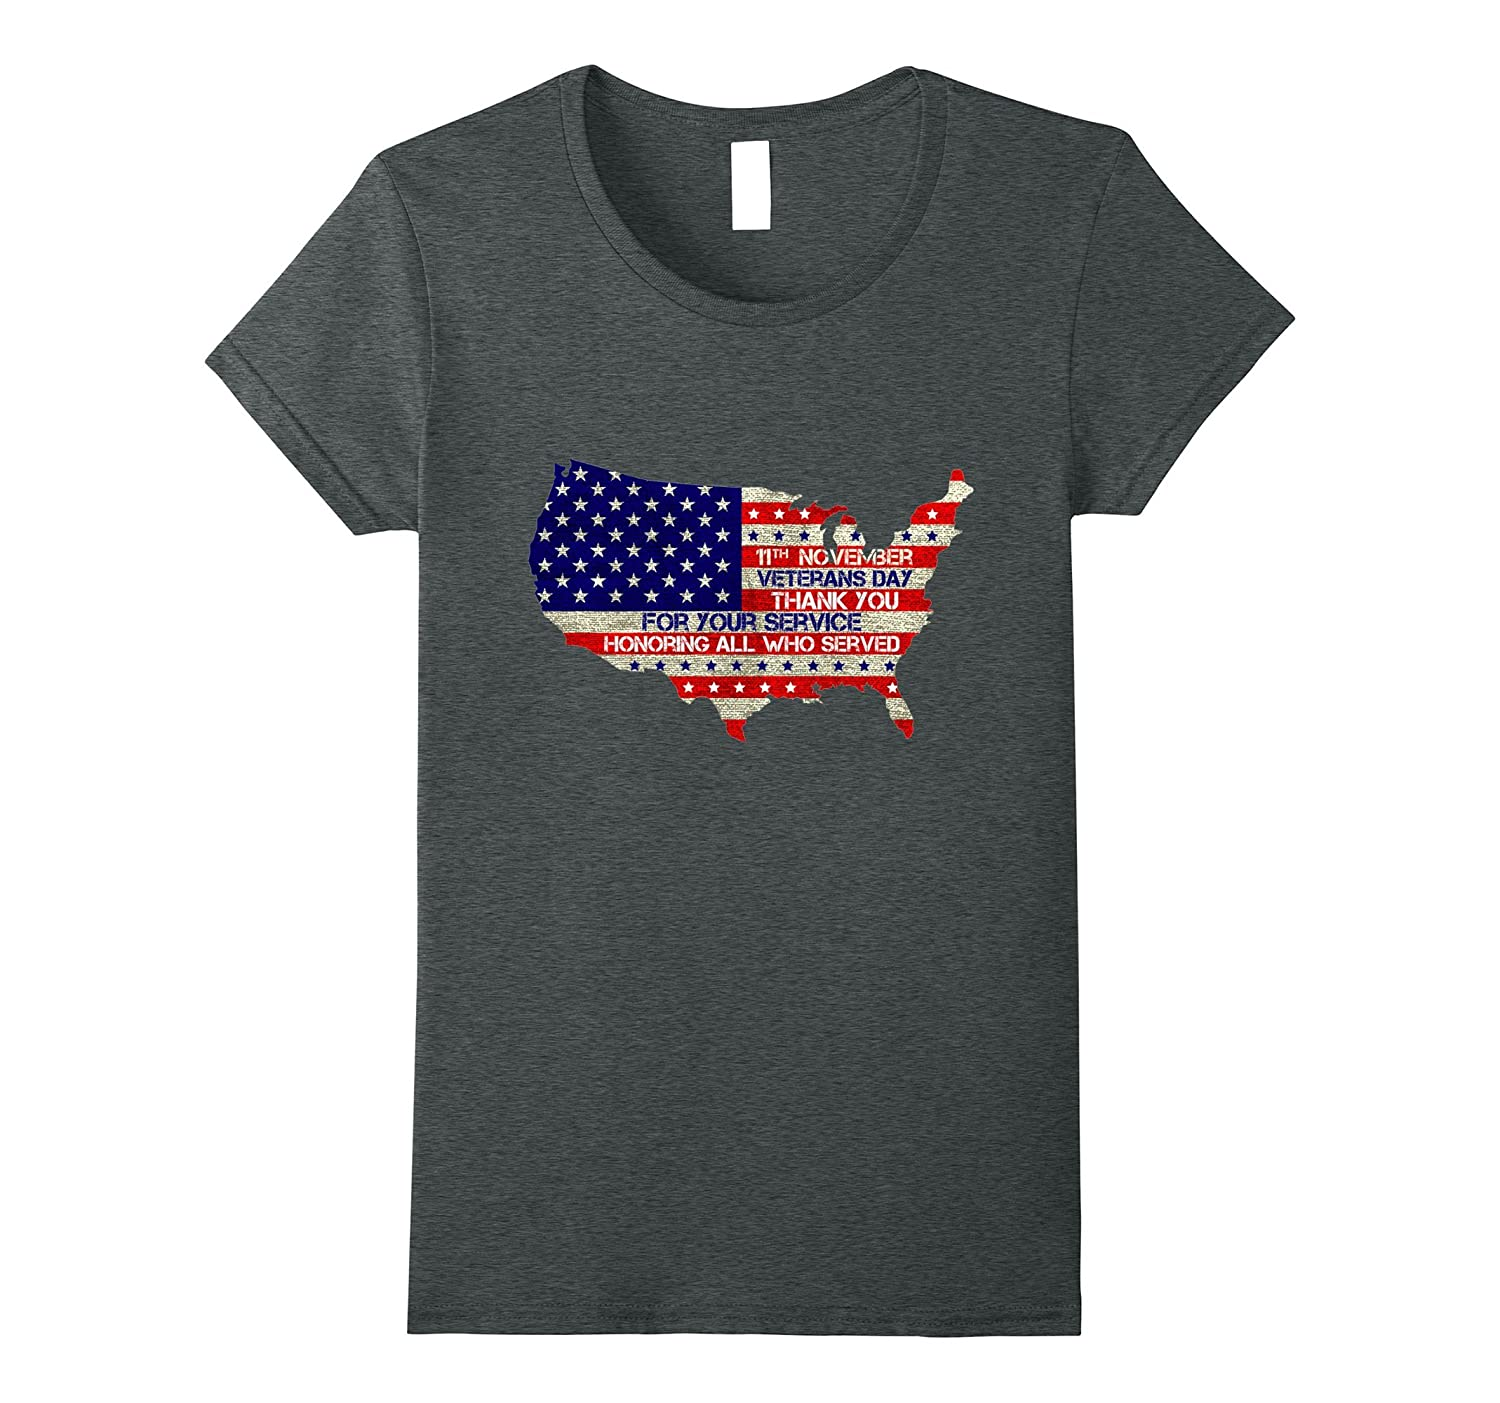 11th November Veterans Day Thank you for your Service Shirt